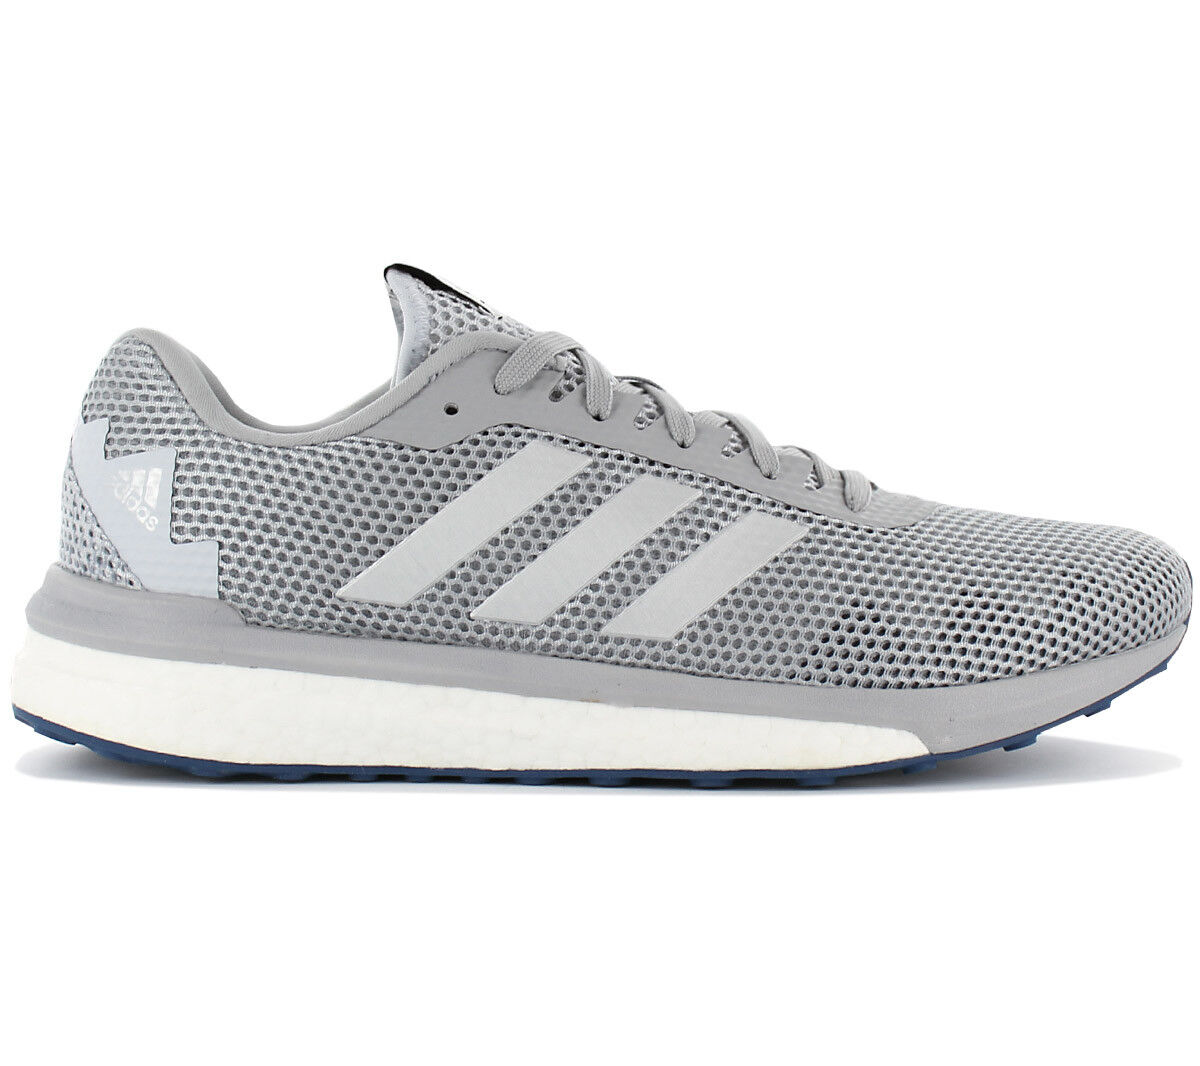 Adidas vengeful M Boost Men's  Running shoes Running shoes Sports shoes aq6084 NEW  cheap and top quality